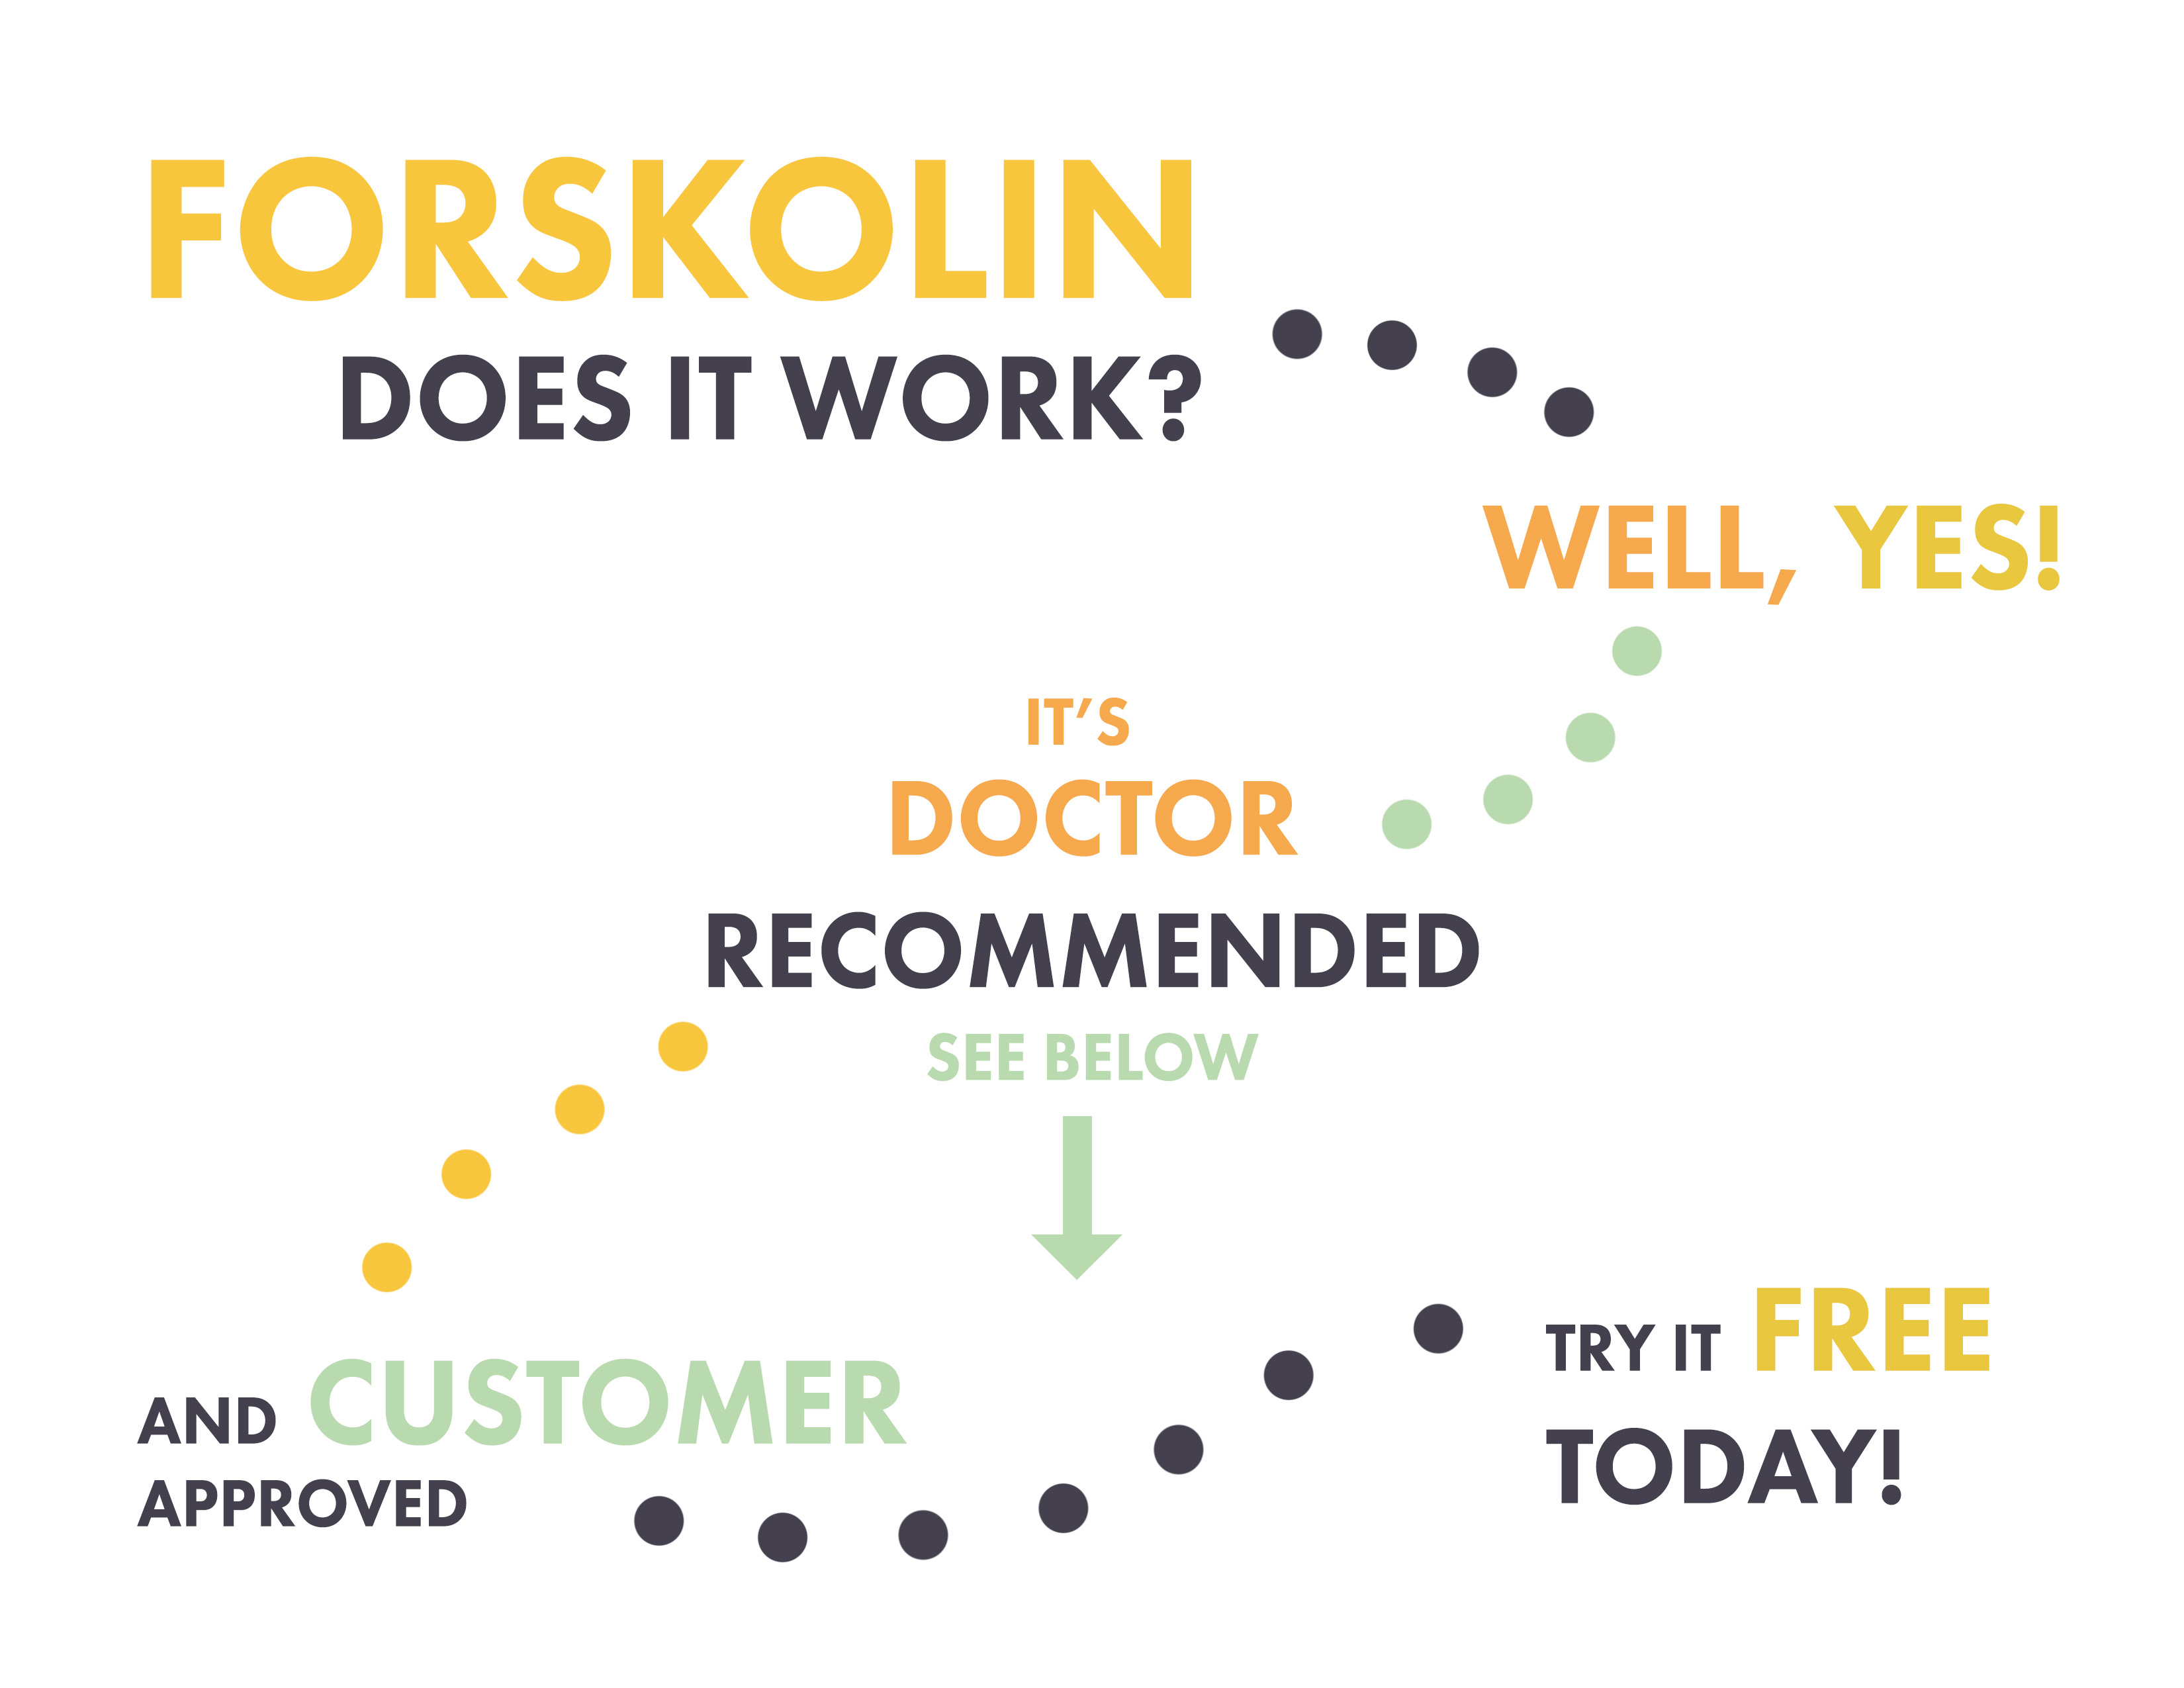 Does it work? Forskolin for weight loss Infographic